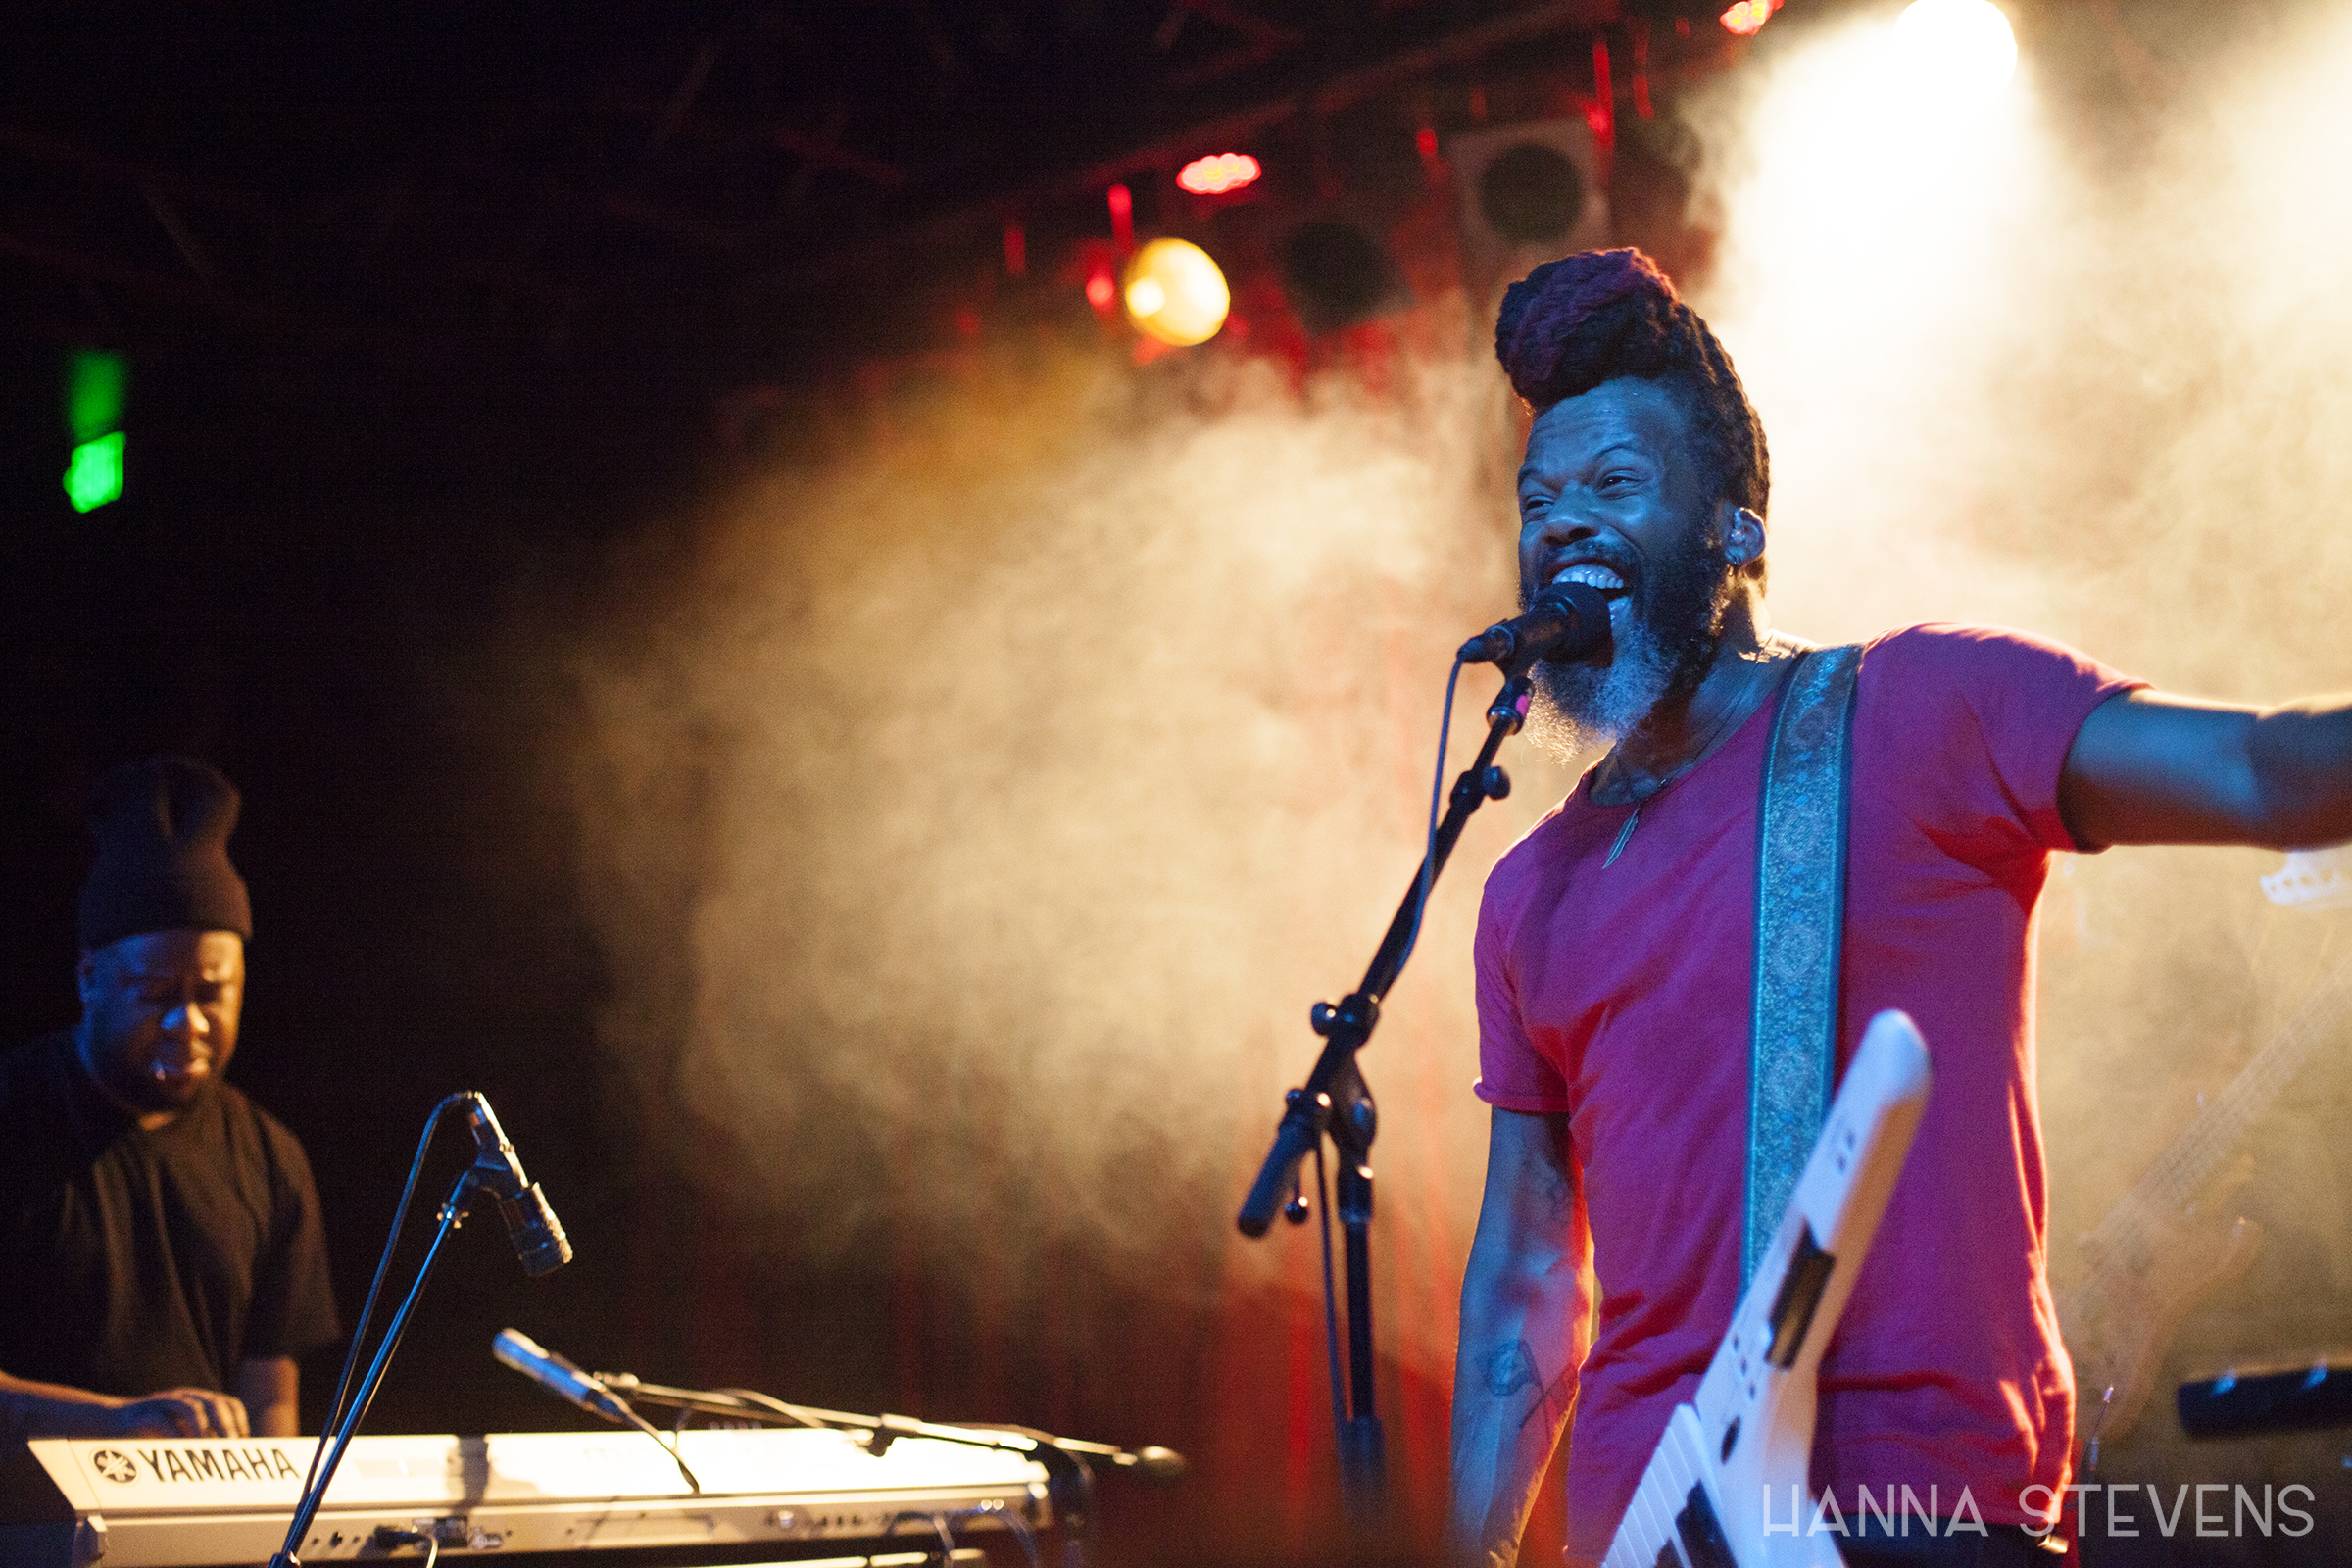 The Robert Glasper Experiment at Neumos (Photo by Hanna Stevens)